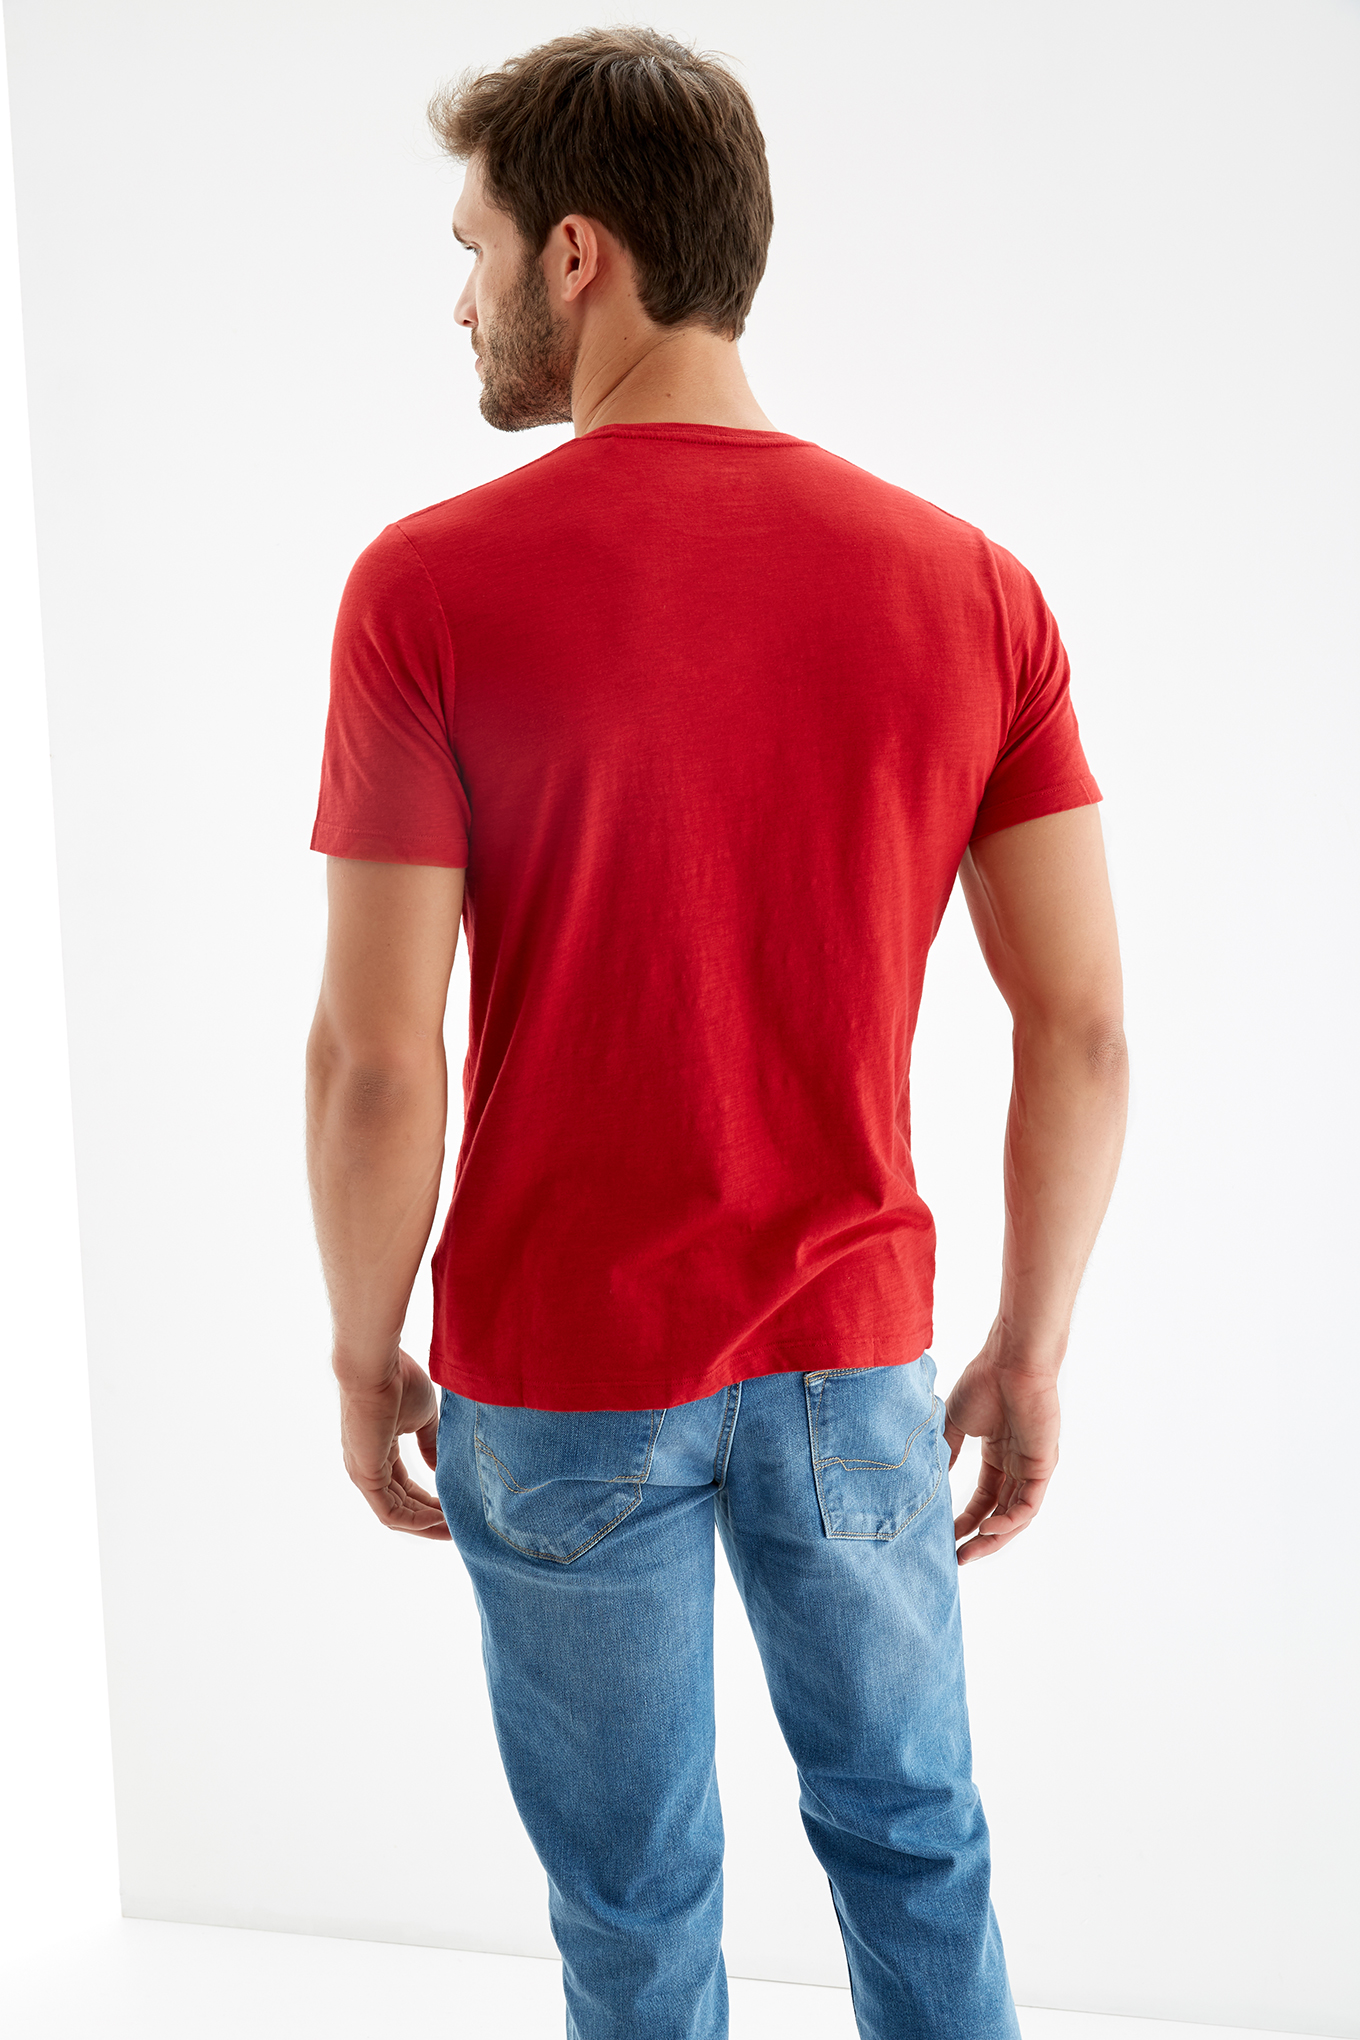 T-Shirt Red Sport Man